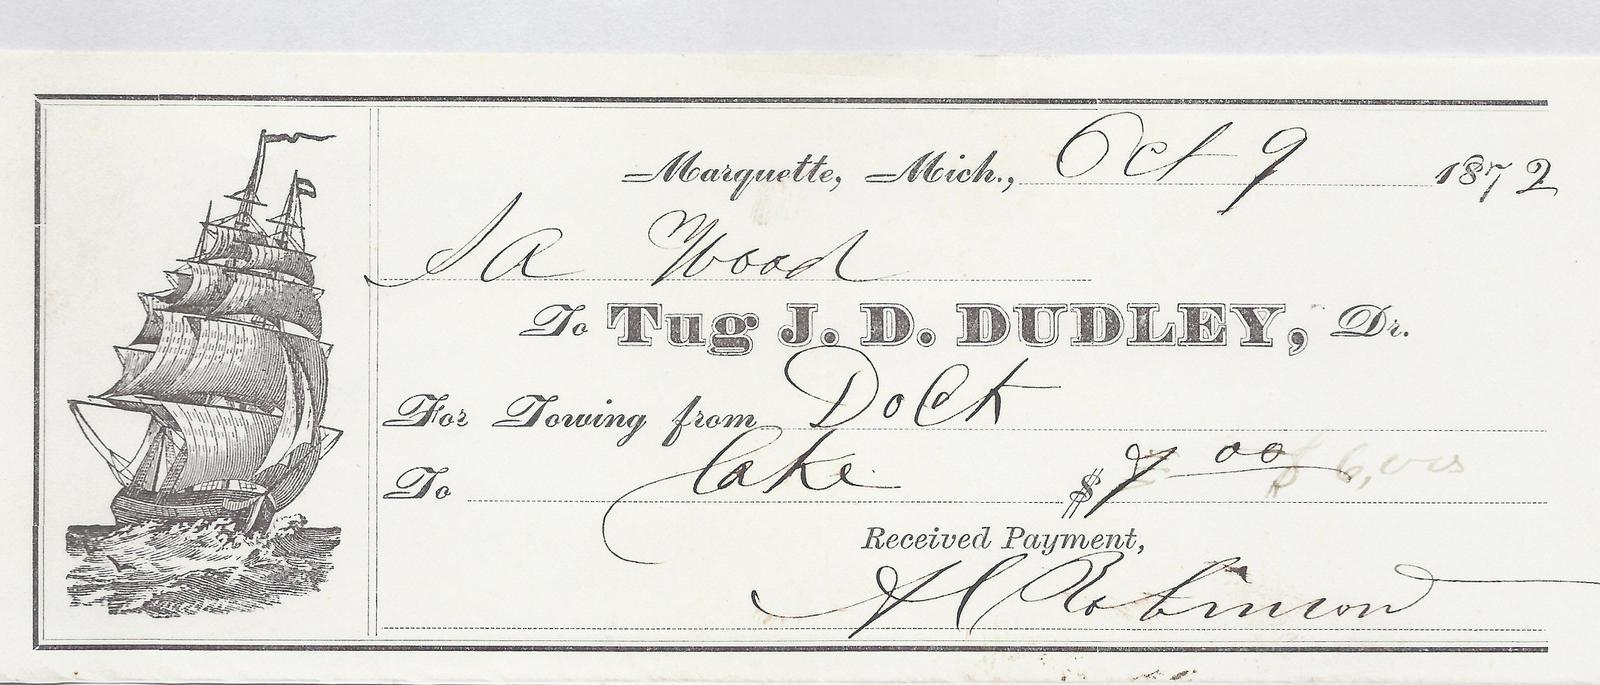 J. D. Dudley, Tug to S. A. Wood, Receipt